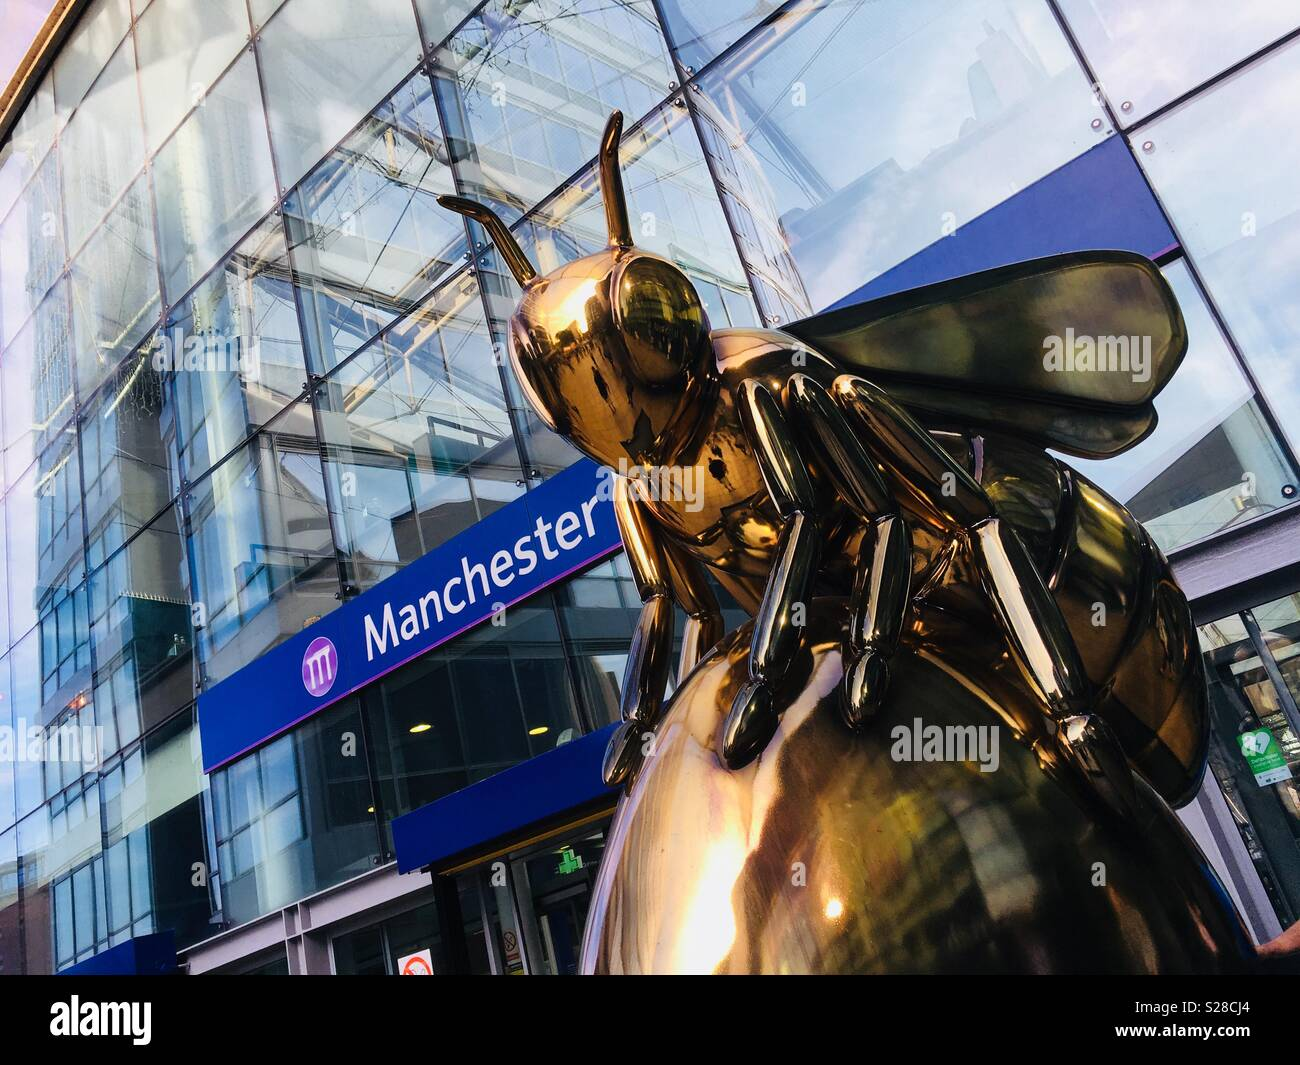 Manchester Bee in the City - Stock Image